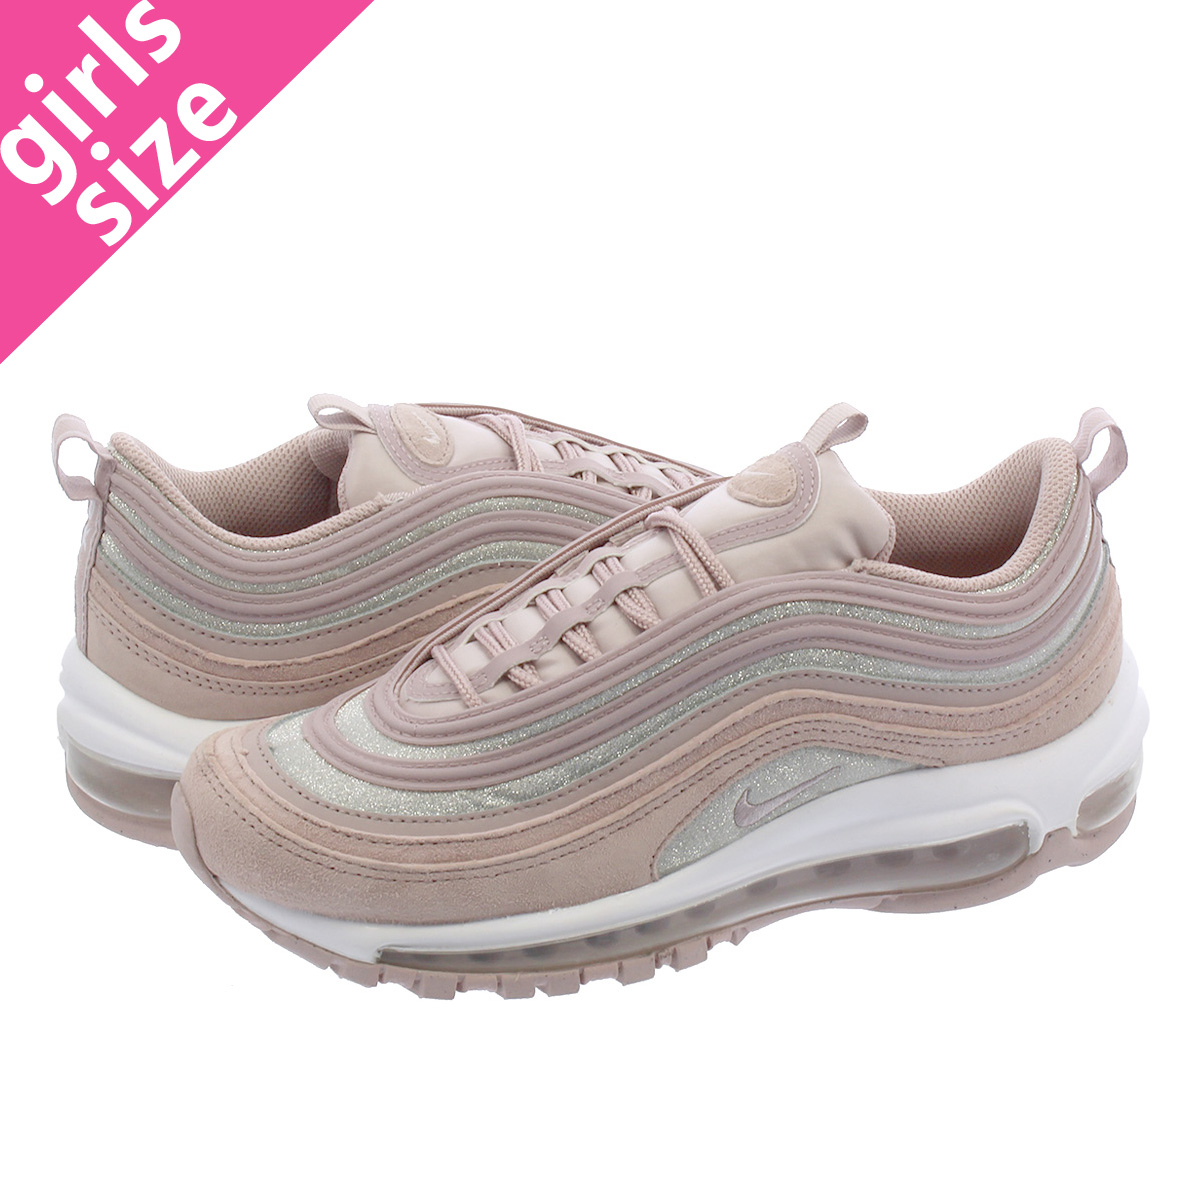 349e537addc ... at0071 600 be95c 18785  50% off nike wmns air max 97 nike women air max  97 particle rose particle